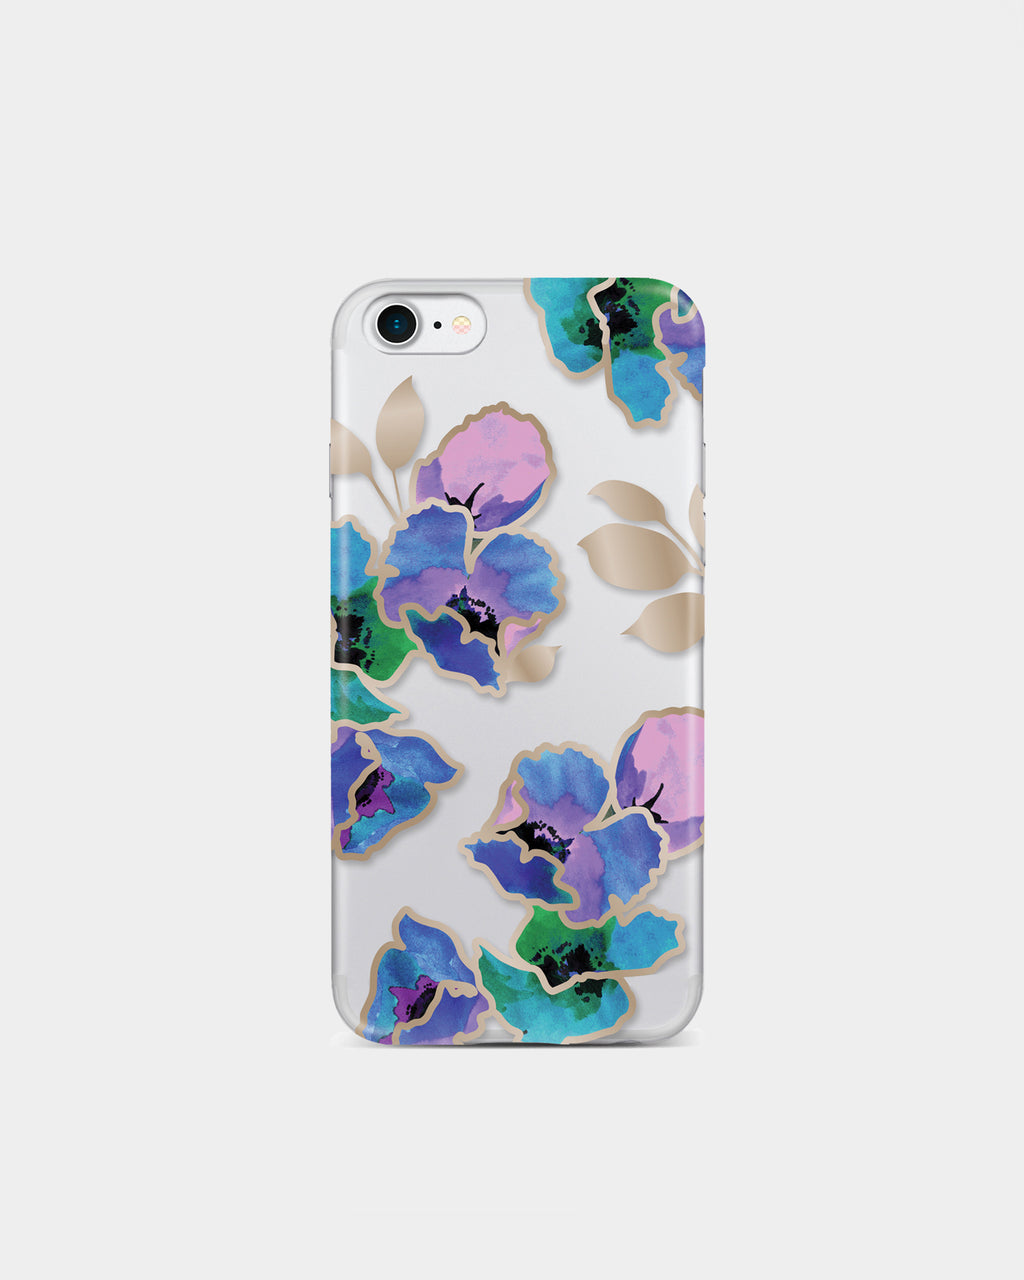 IC7045 - Botanical iPhone 7 Case - accessories - fashion tech - In a vibrant tropical print, this case is fit for the iPhone 7.